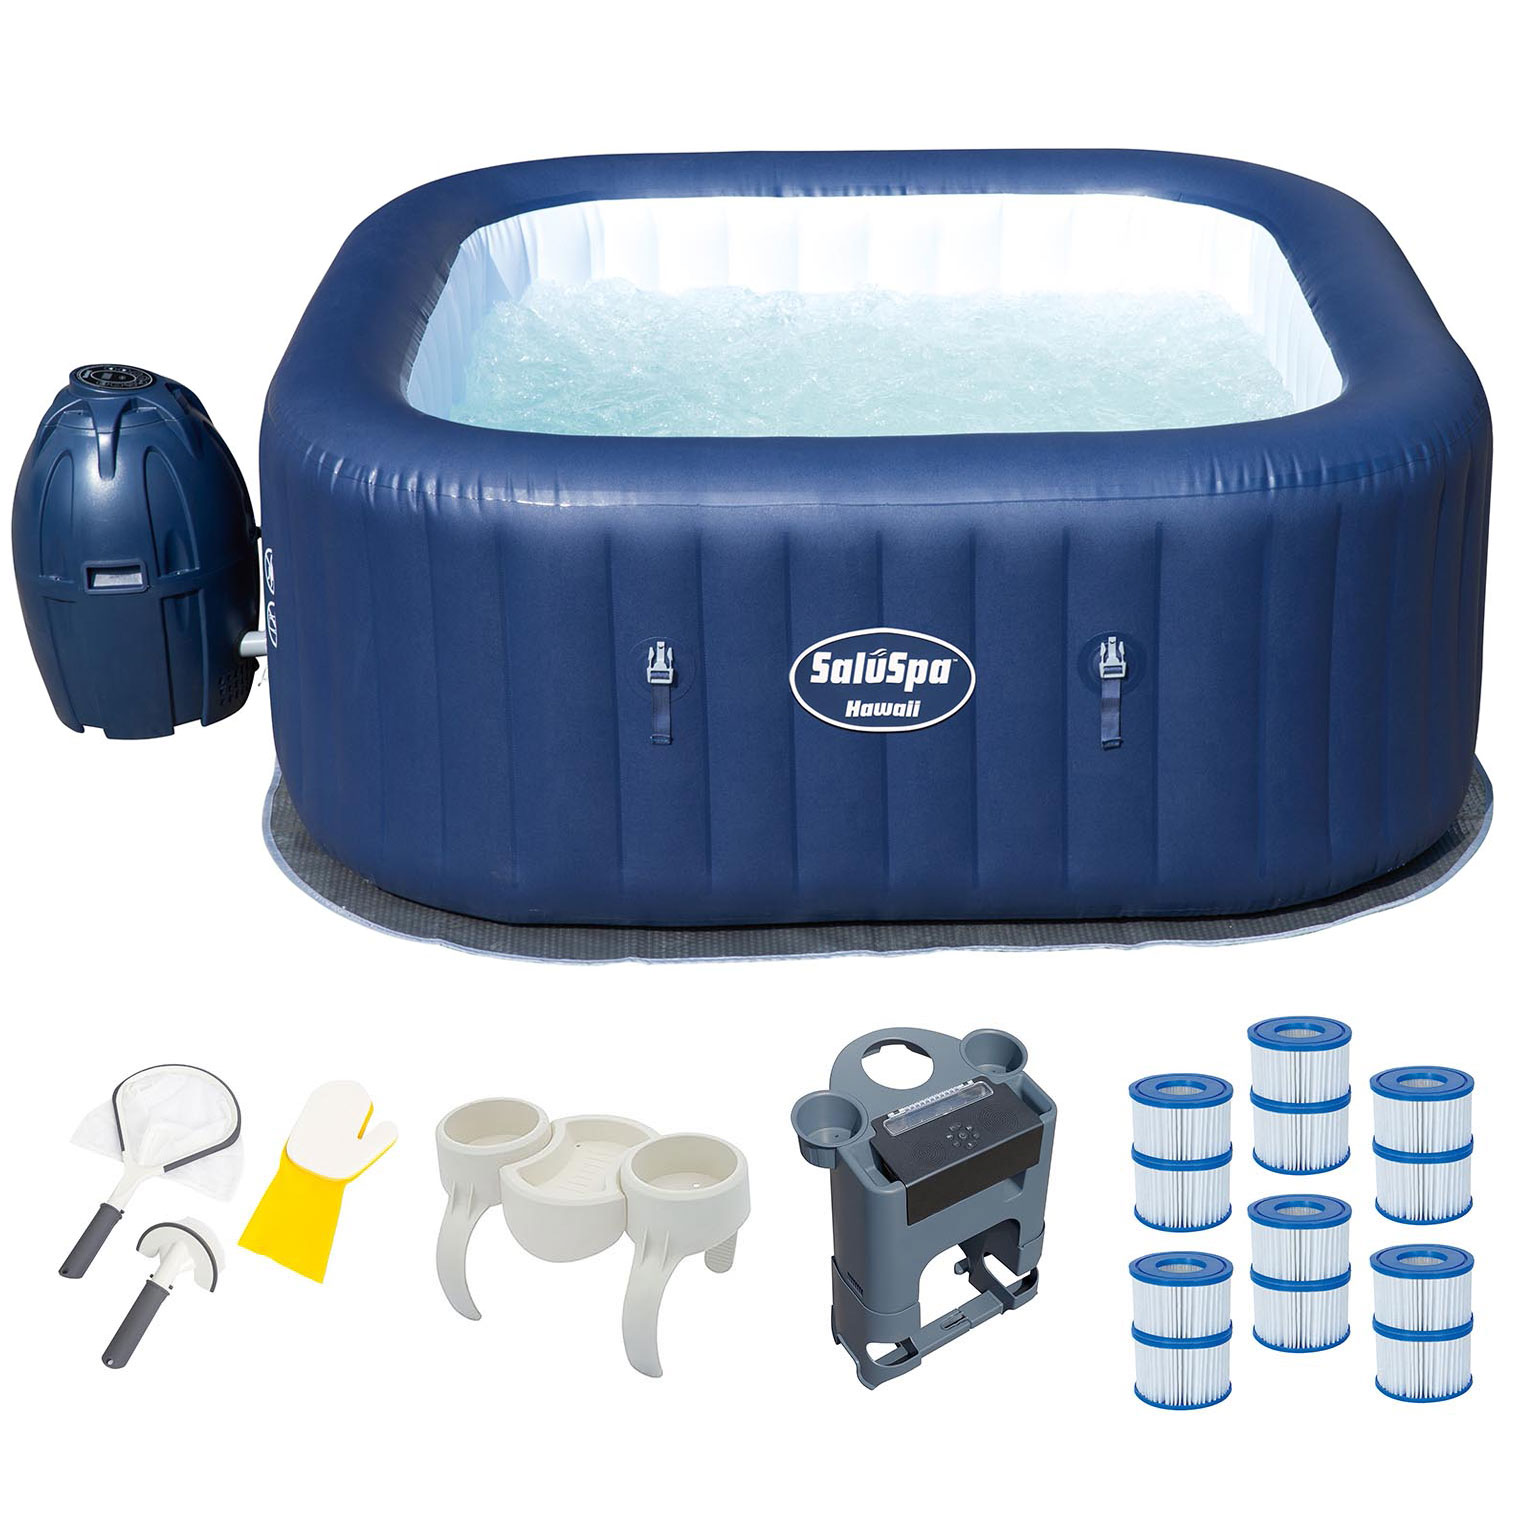 Bestway 6 Person Inflatable Hot Tub + Music Center + 6 Fi...